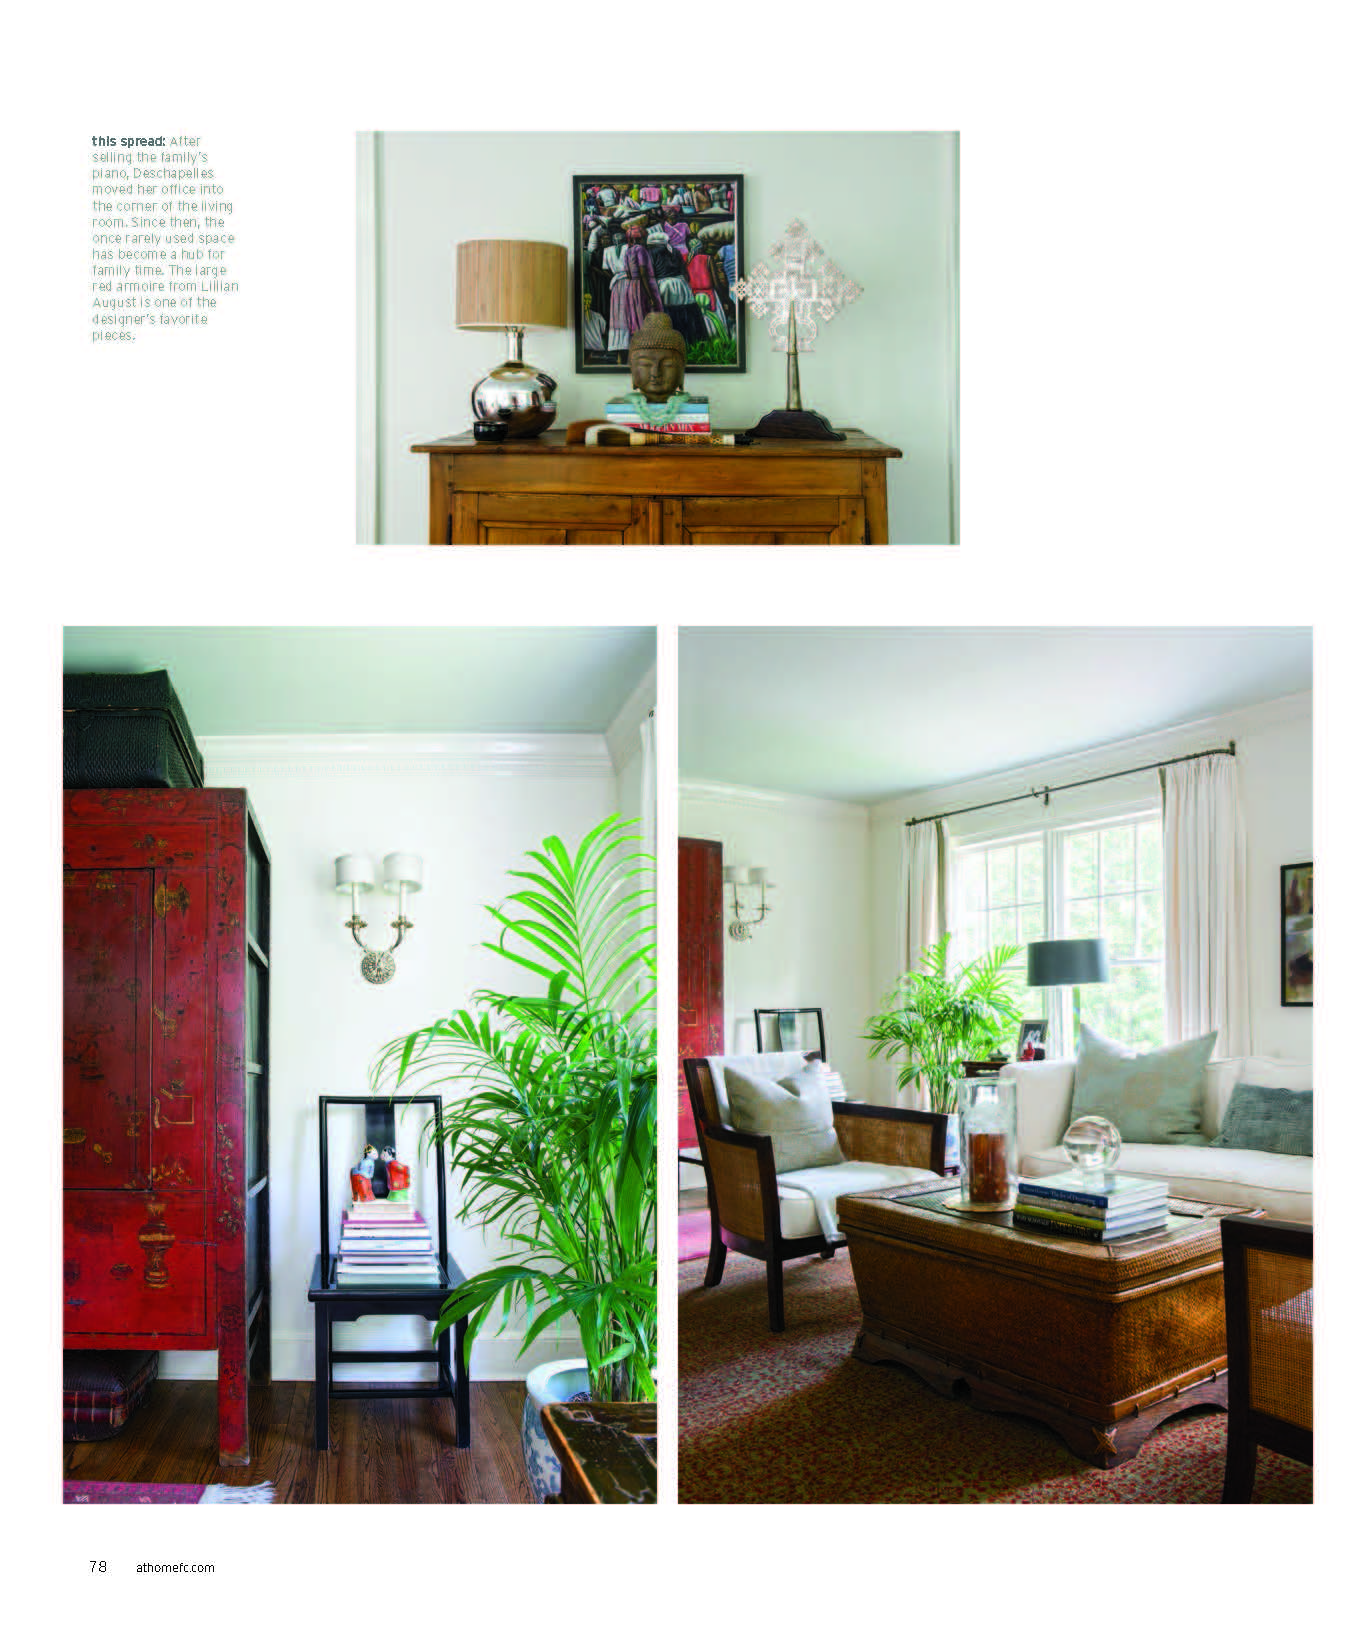 At Home_Page_07.jpg